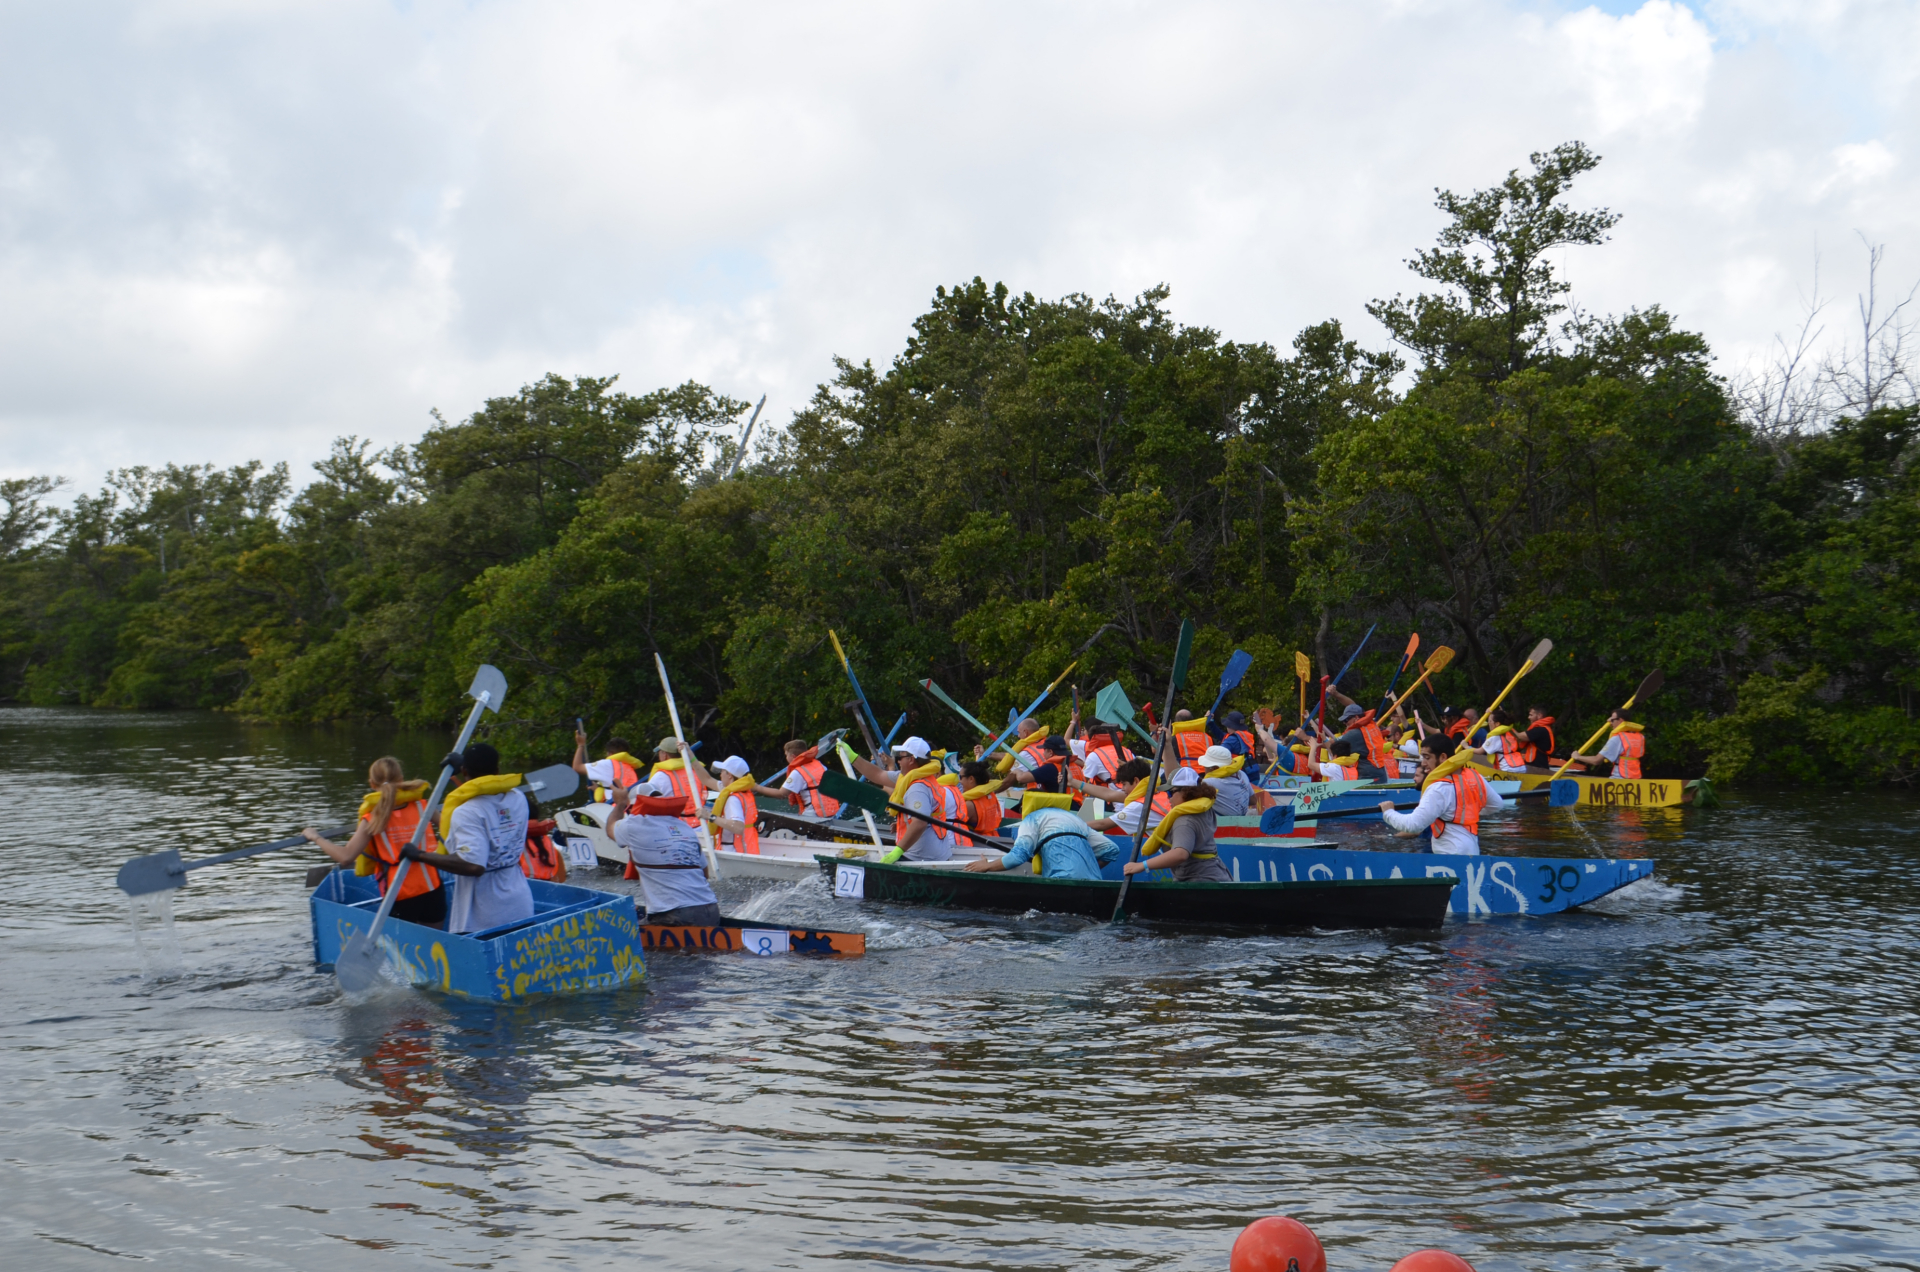 News - 24th Annual Plywood Regatta